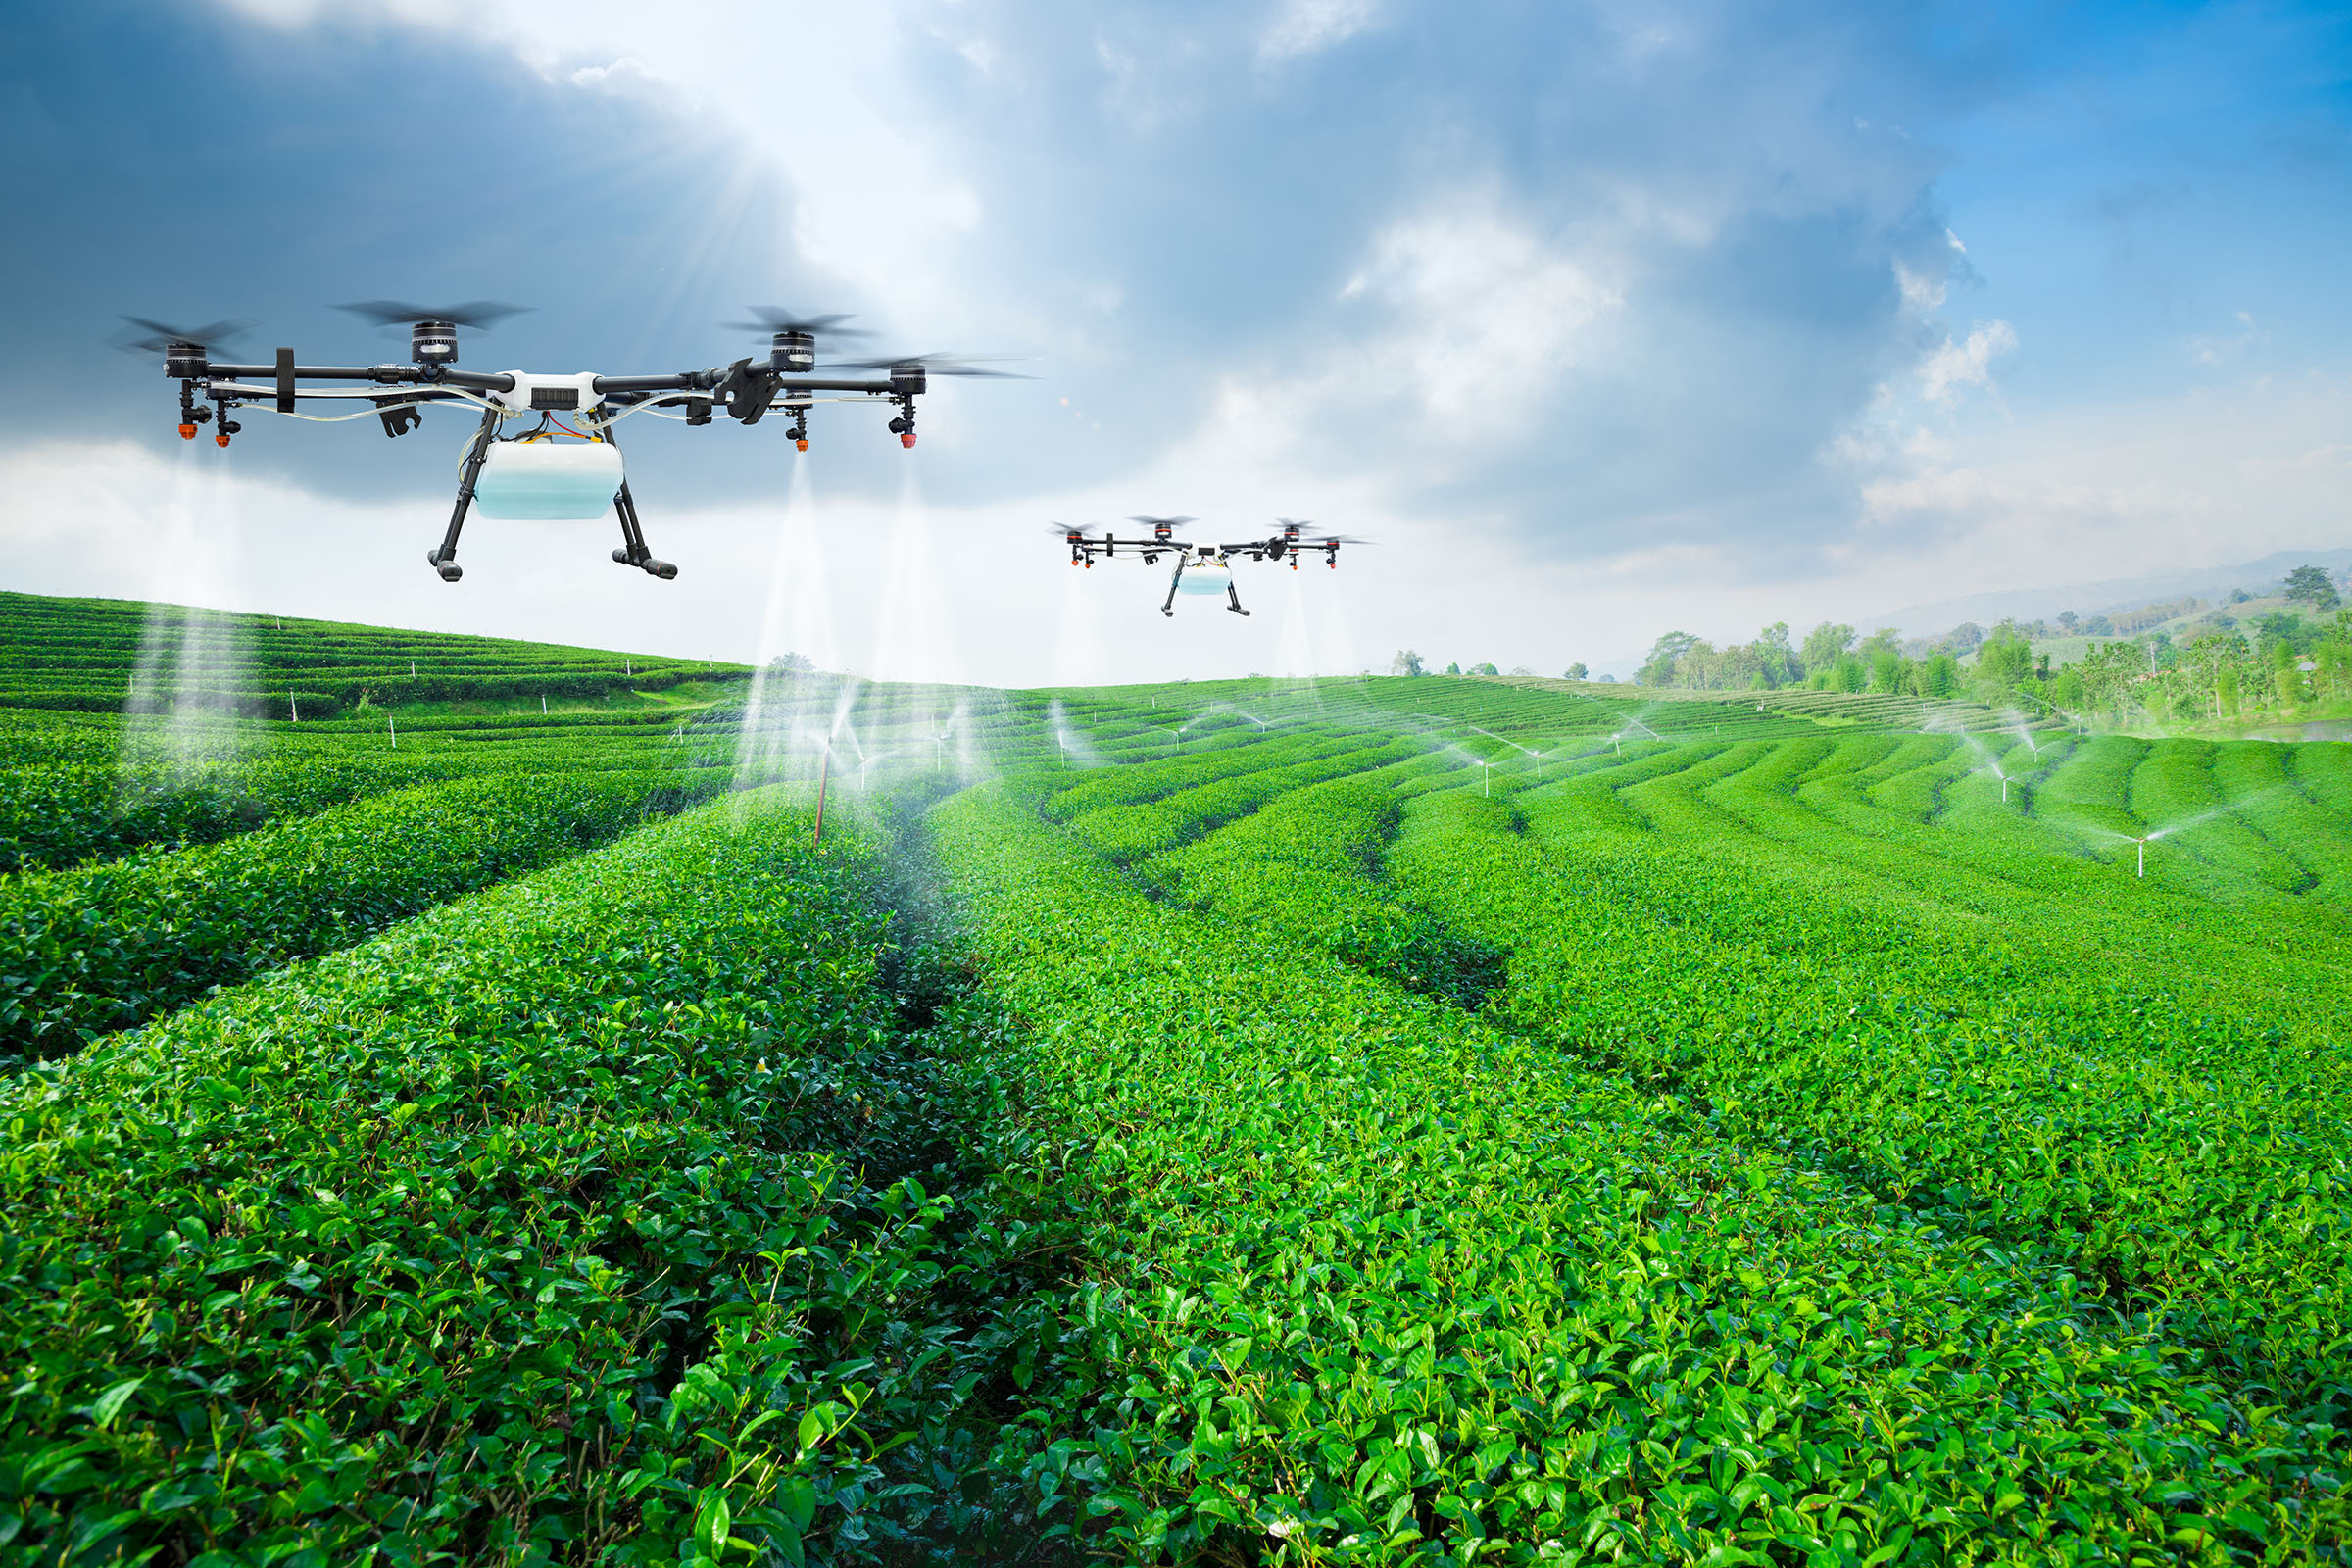 Technology plays an increasing role in Ag industry